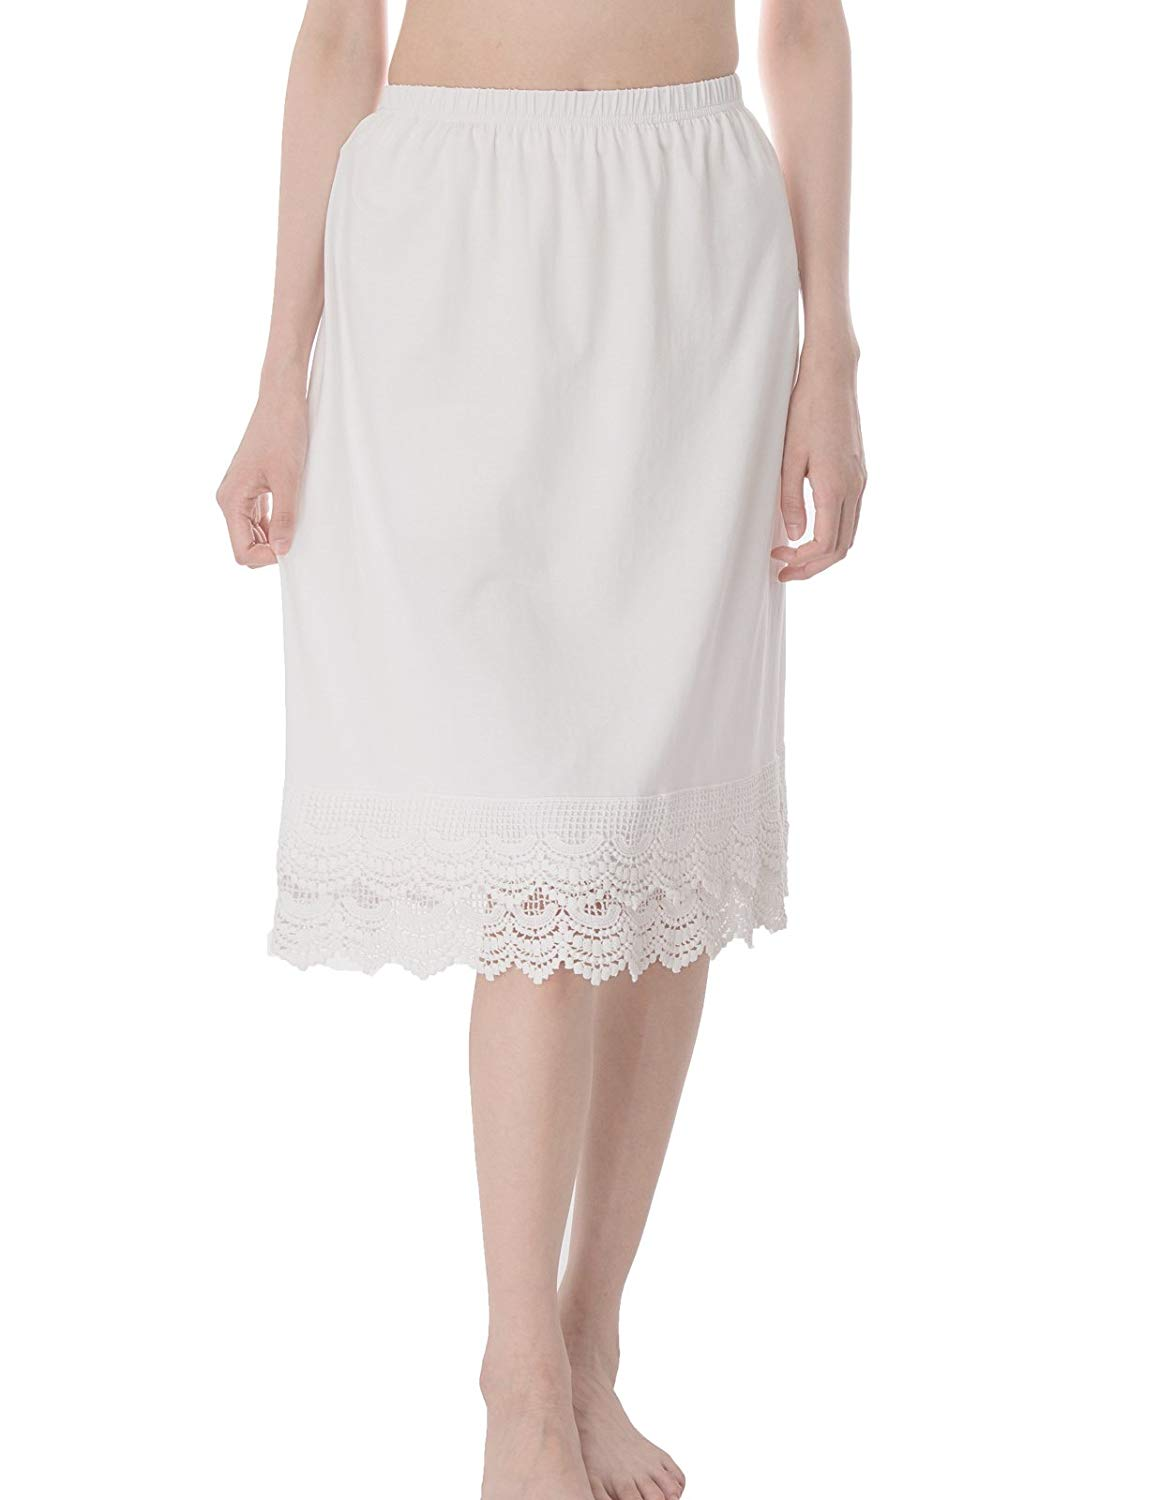 233611e83975 GRACE KARIN Knee Length Underskirt Double Lace Skirt Extender Half Slip